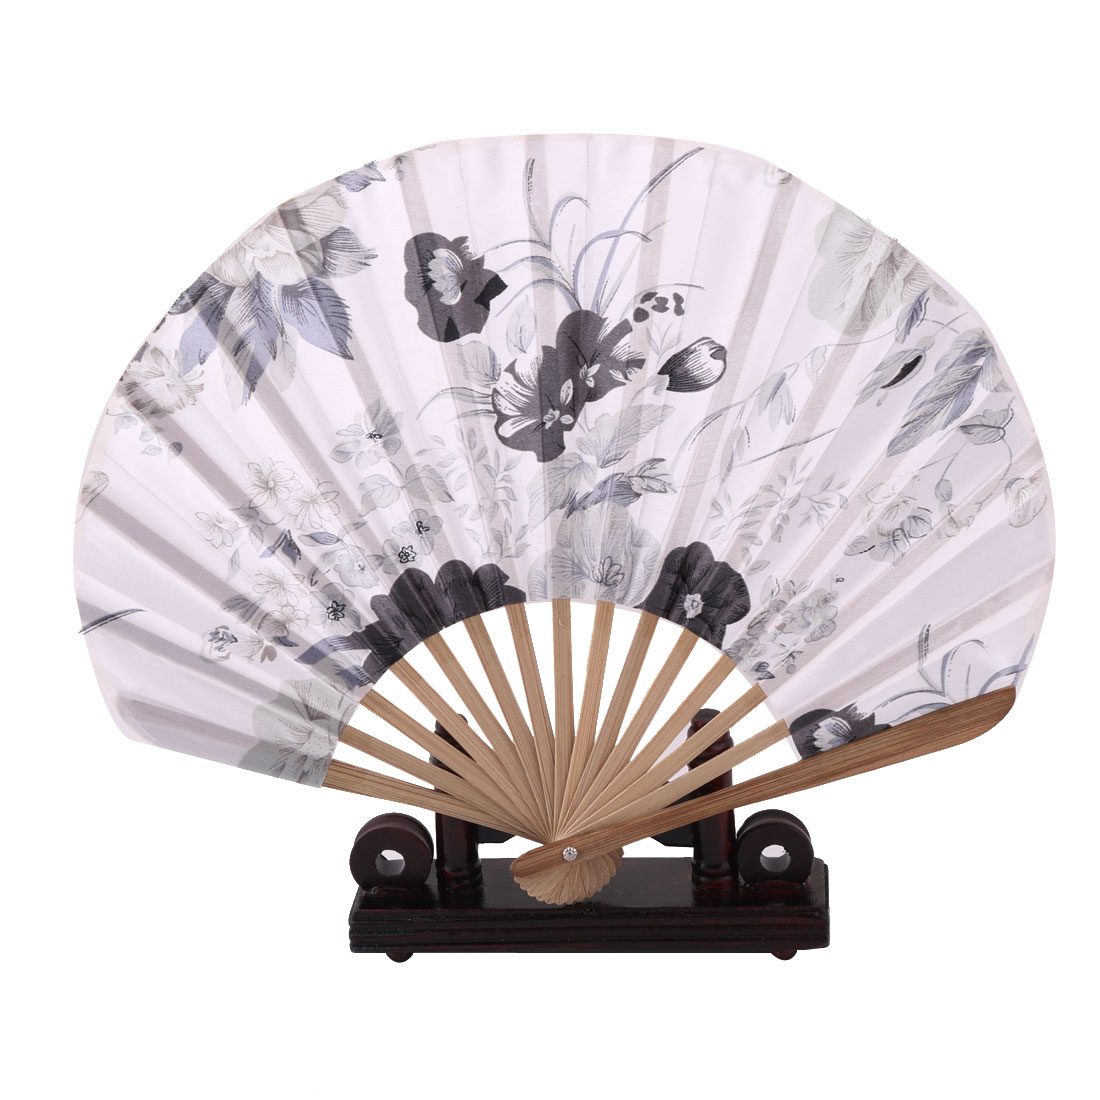 Home Wood Flower Print Chinese Style Handheld Folding Fan Display Holder White 2 in 1